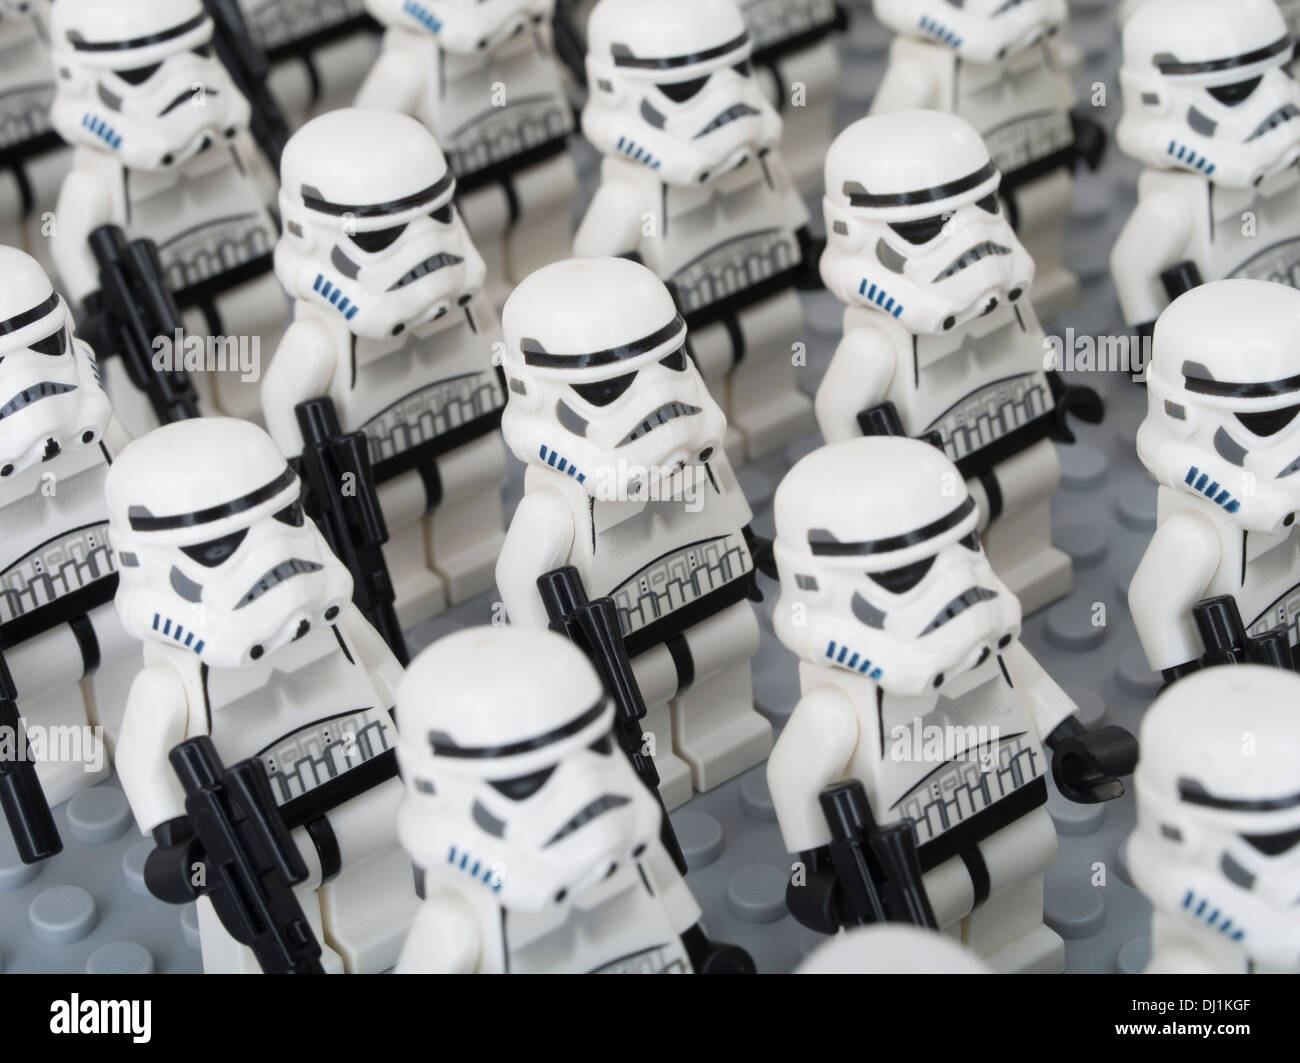 Lego Star Wars Minifigure  Storm Troopers ( clone soldiers ) - Stock Image